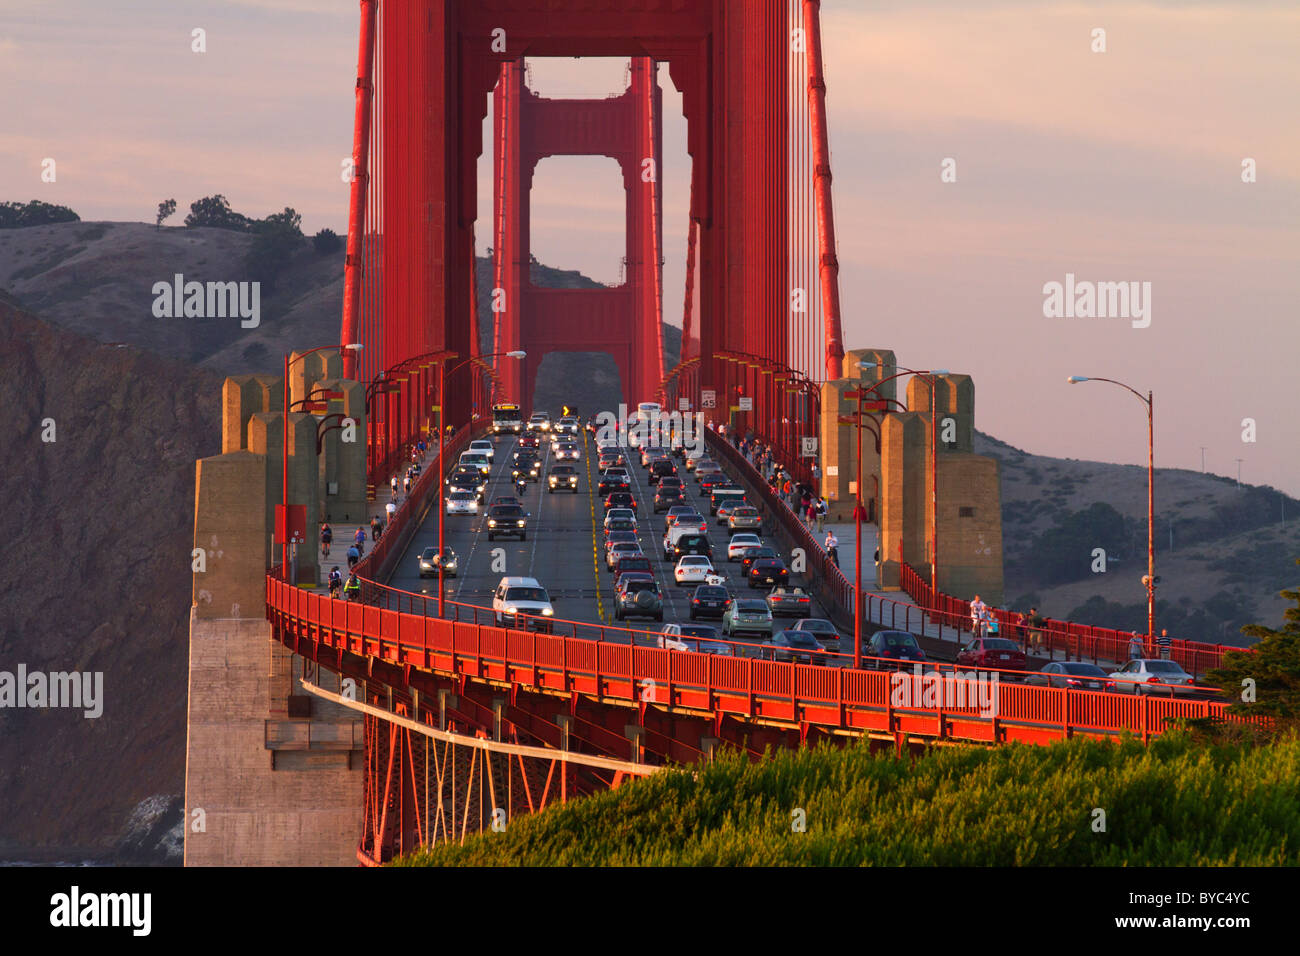 Golden Gate Bridge, San Francisco, CA - Stock Image